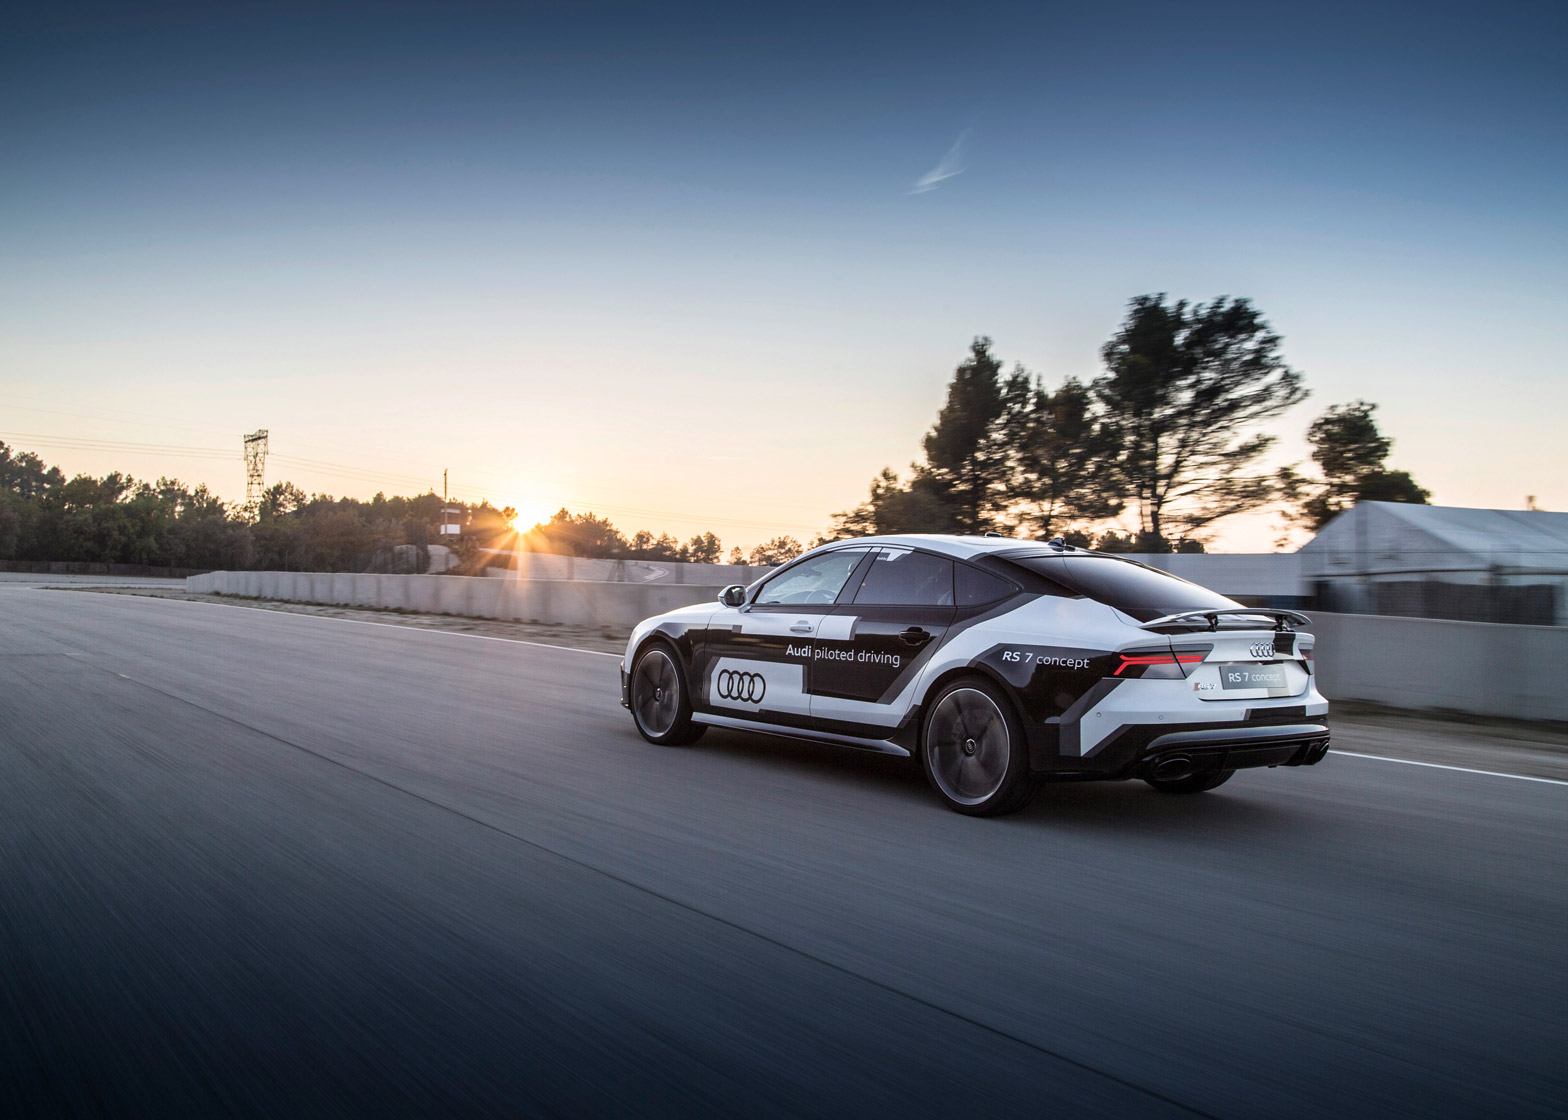 Audi's RS 7 driverless car